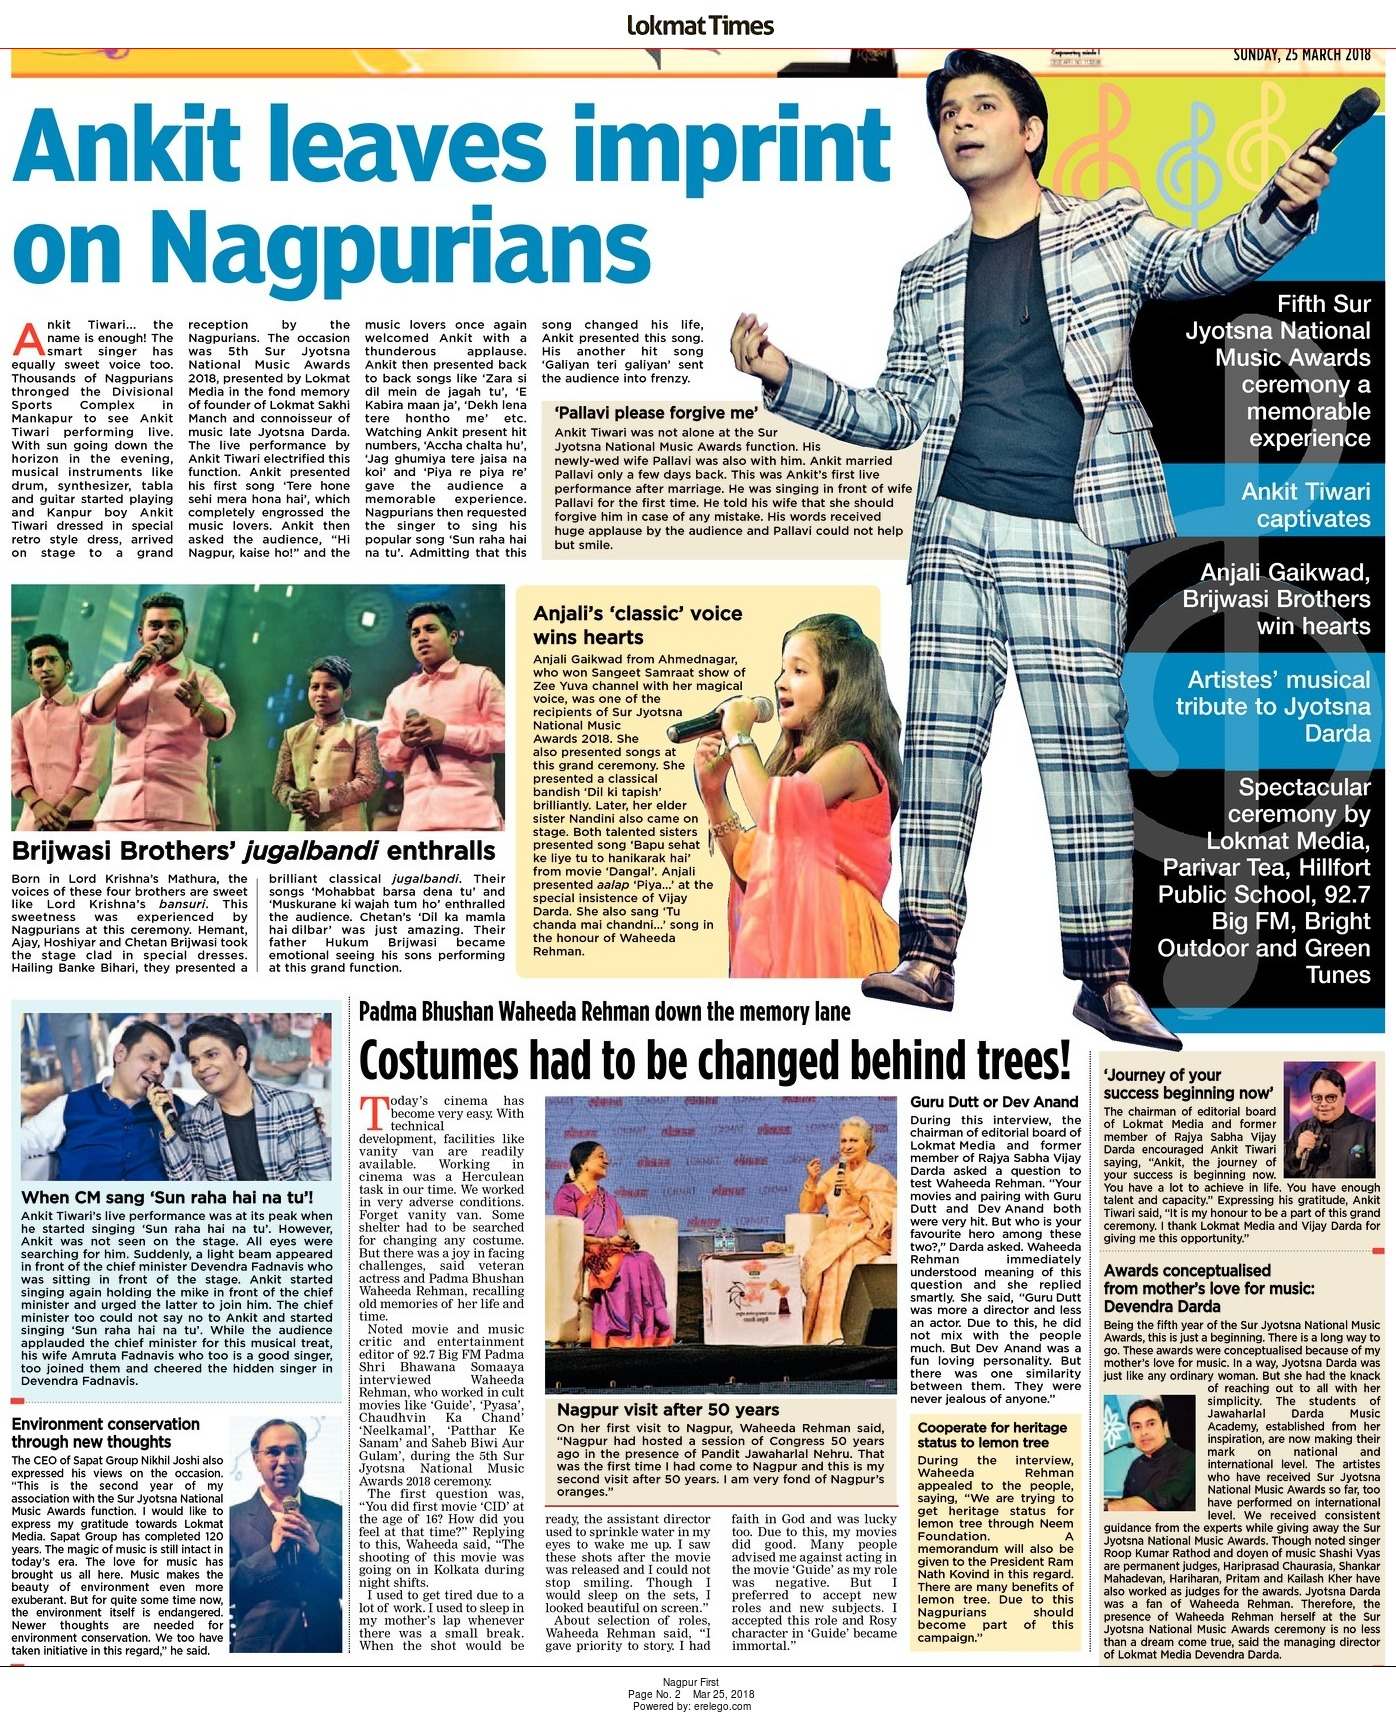 Ankit leaves imprint on Nagpurians